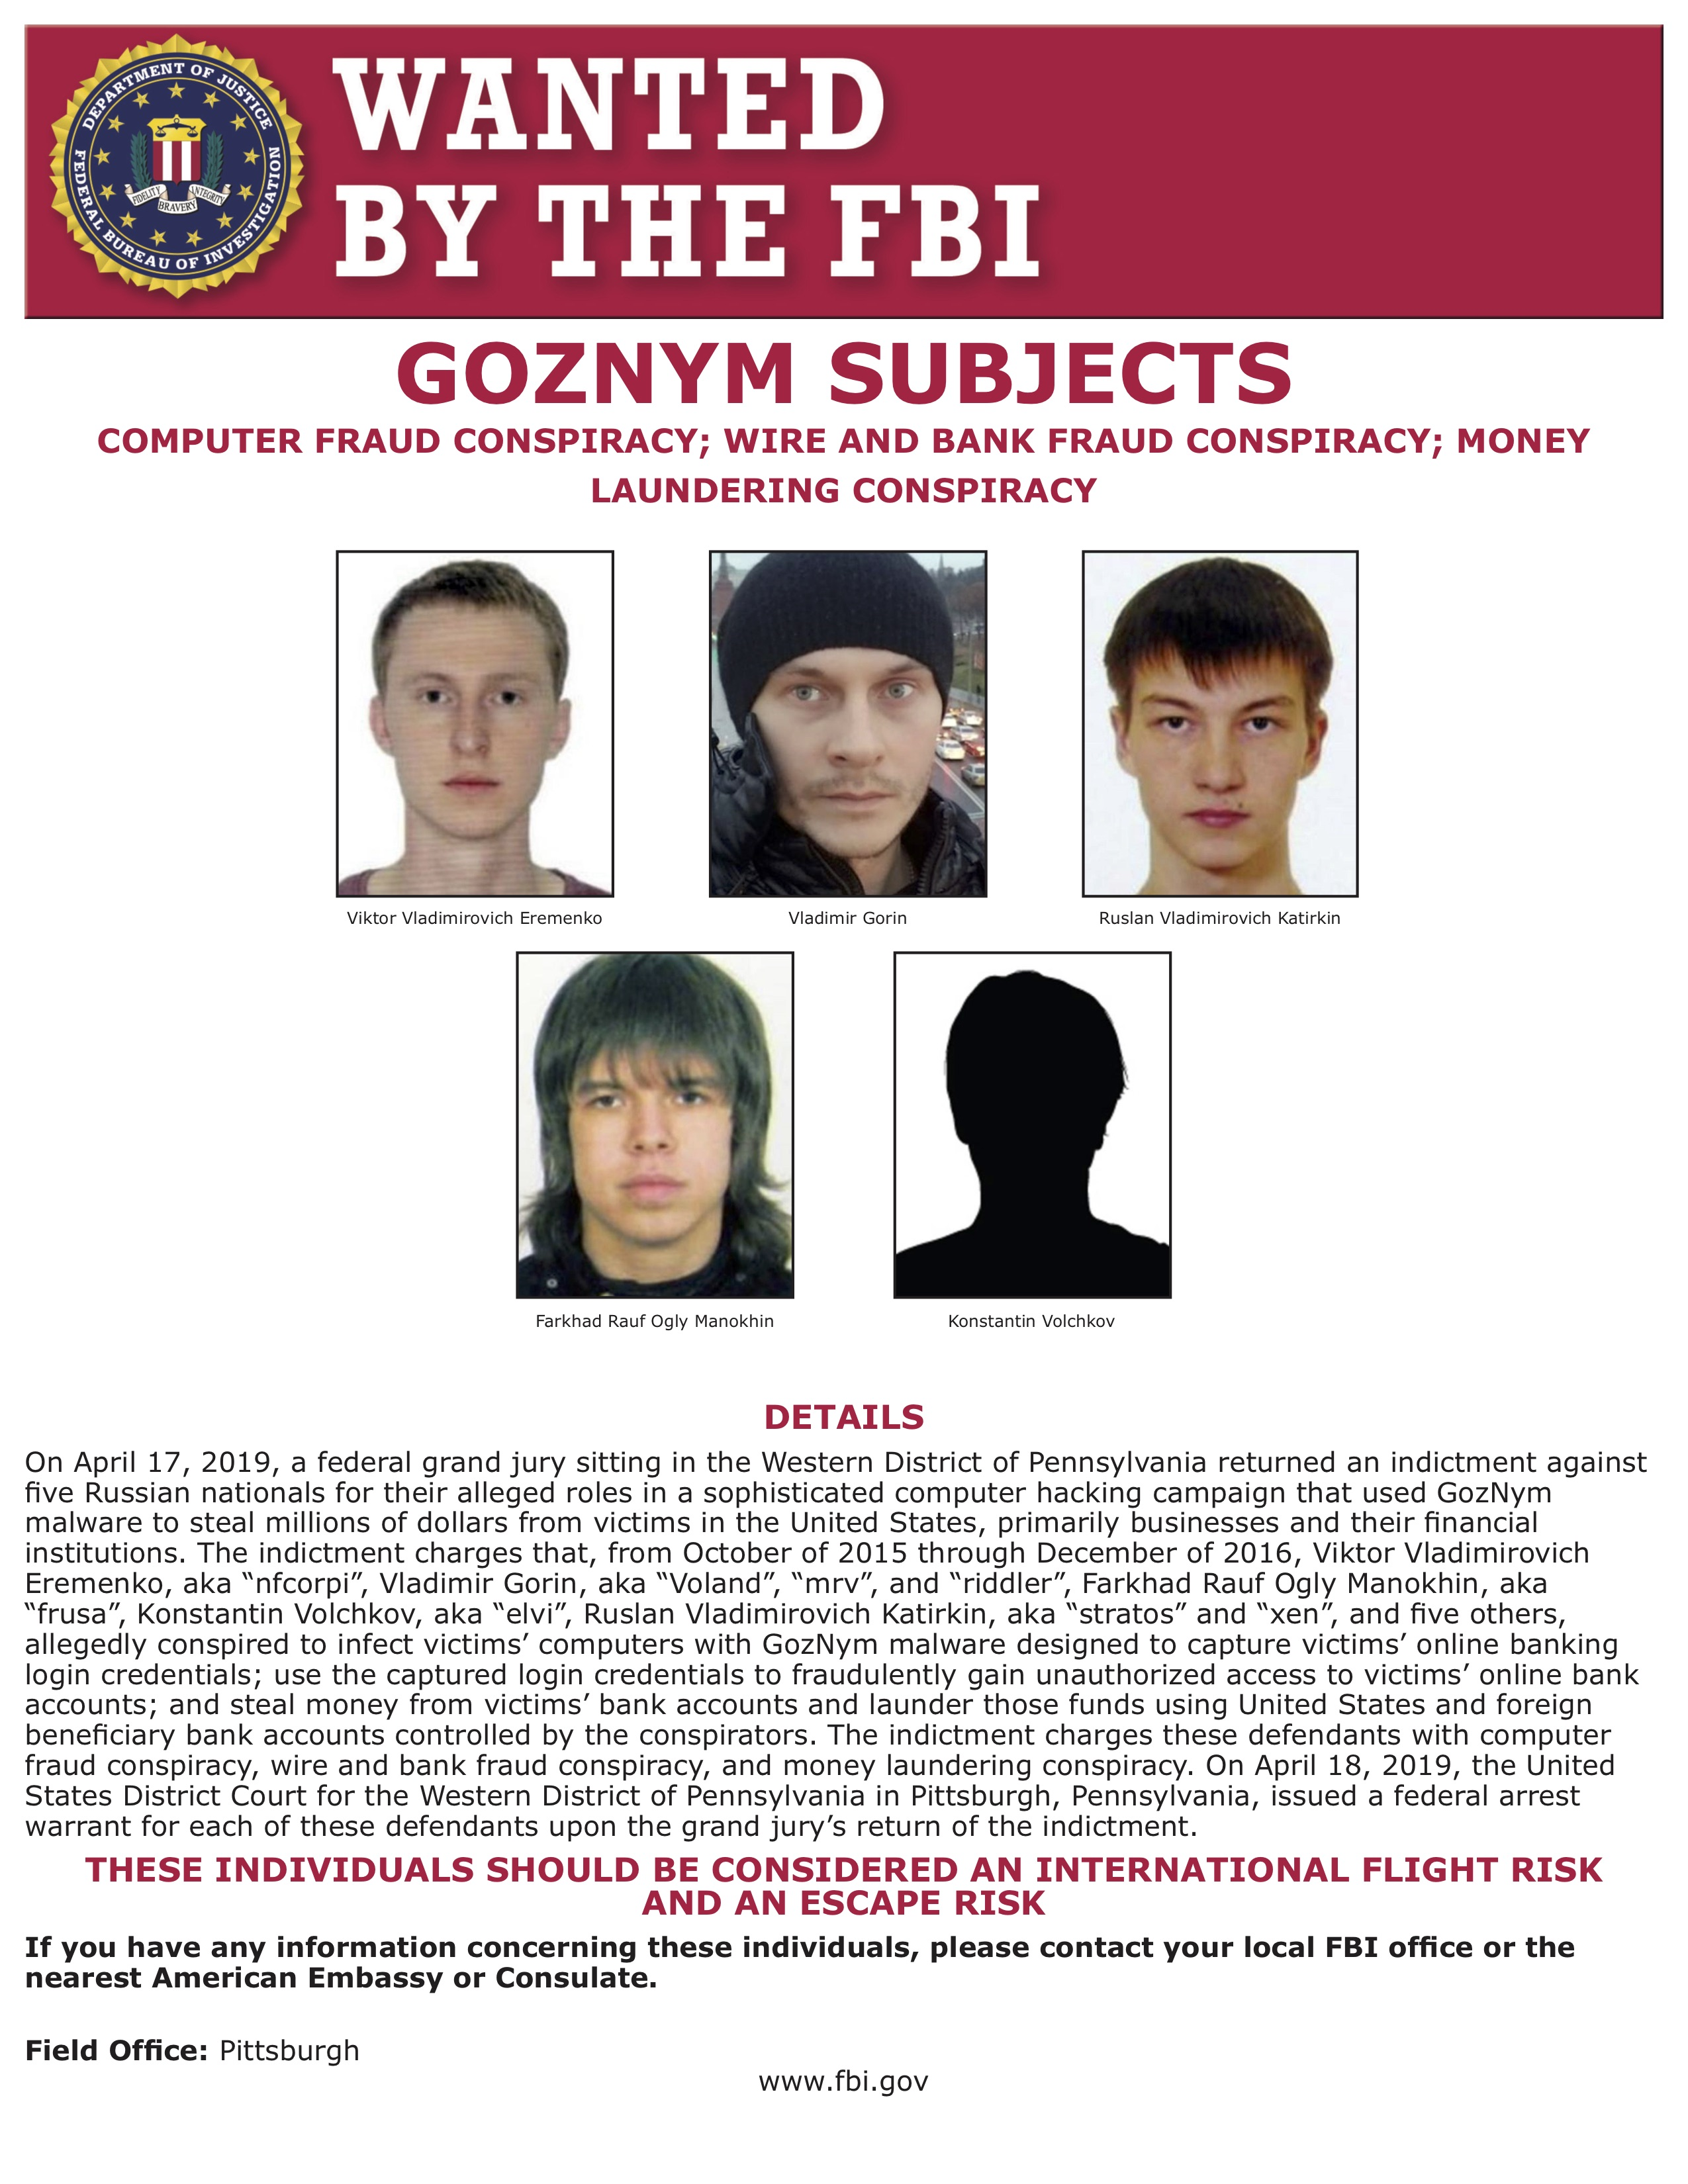 GOZNYM SUBJECTS COMPUTER FRAUD CONSPIRACY; WIRE AND BANK FRAUD CONSPIRACY; MONEY LAUNDERING CONSPIRACY